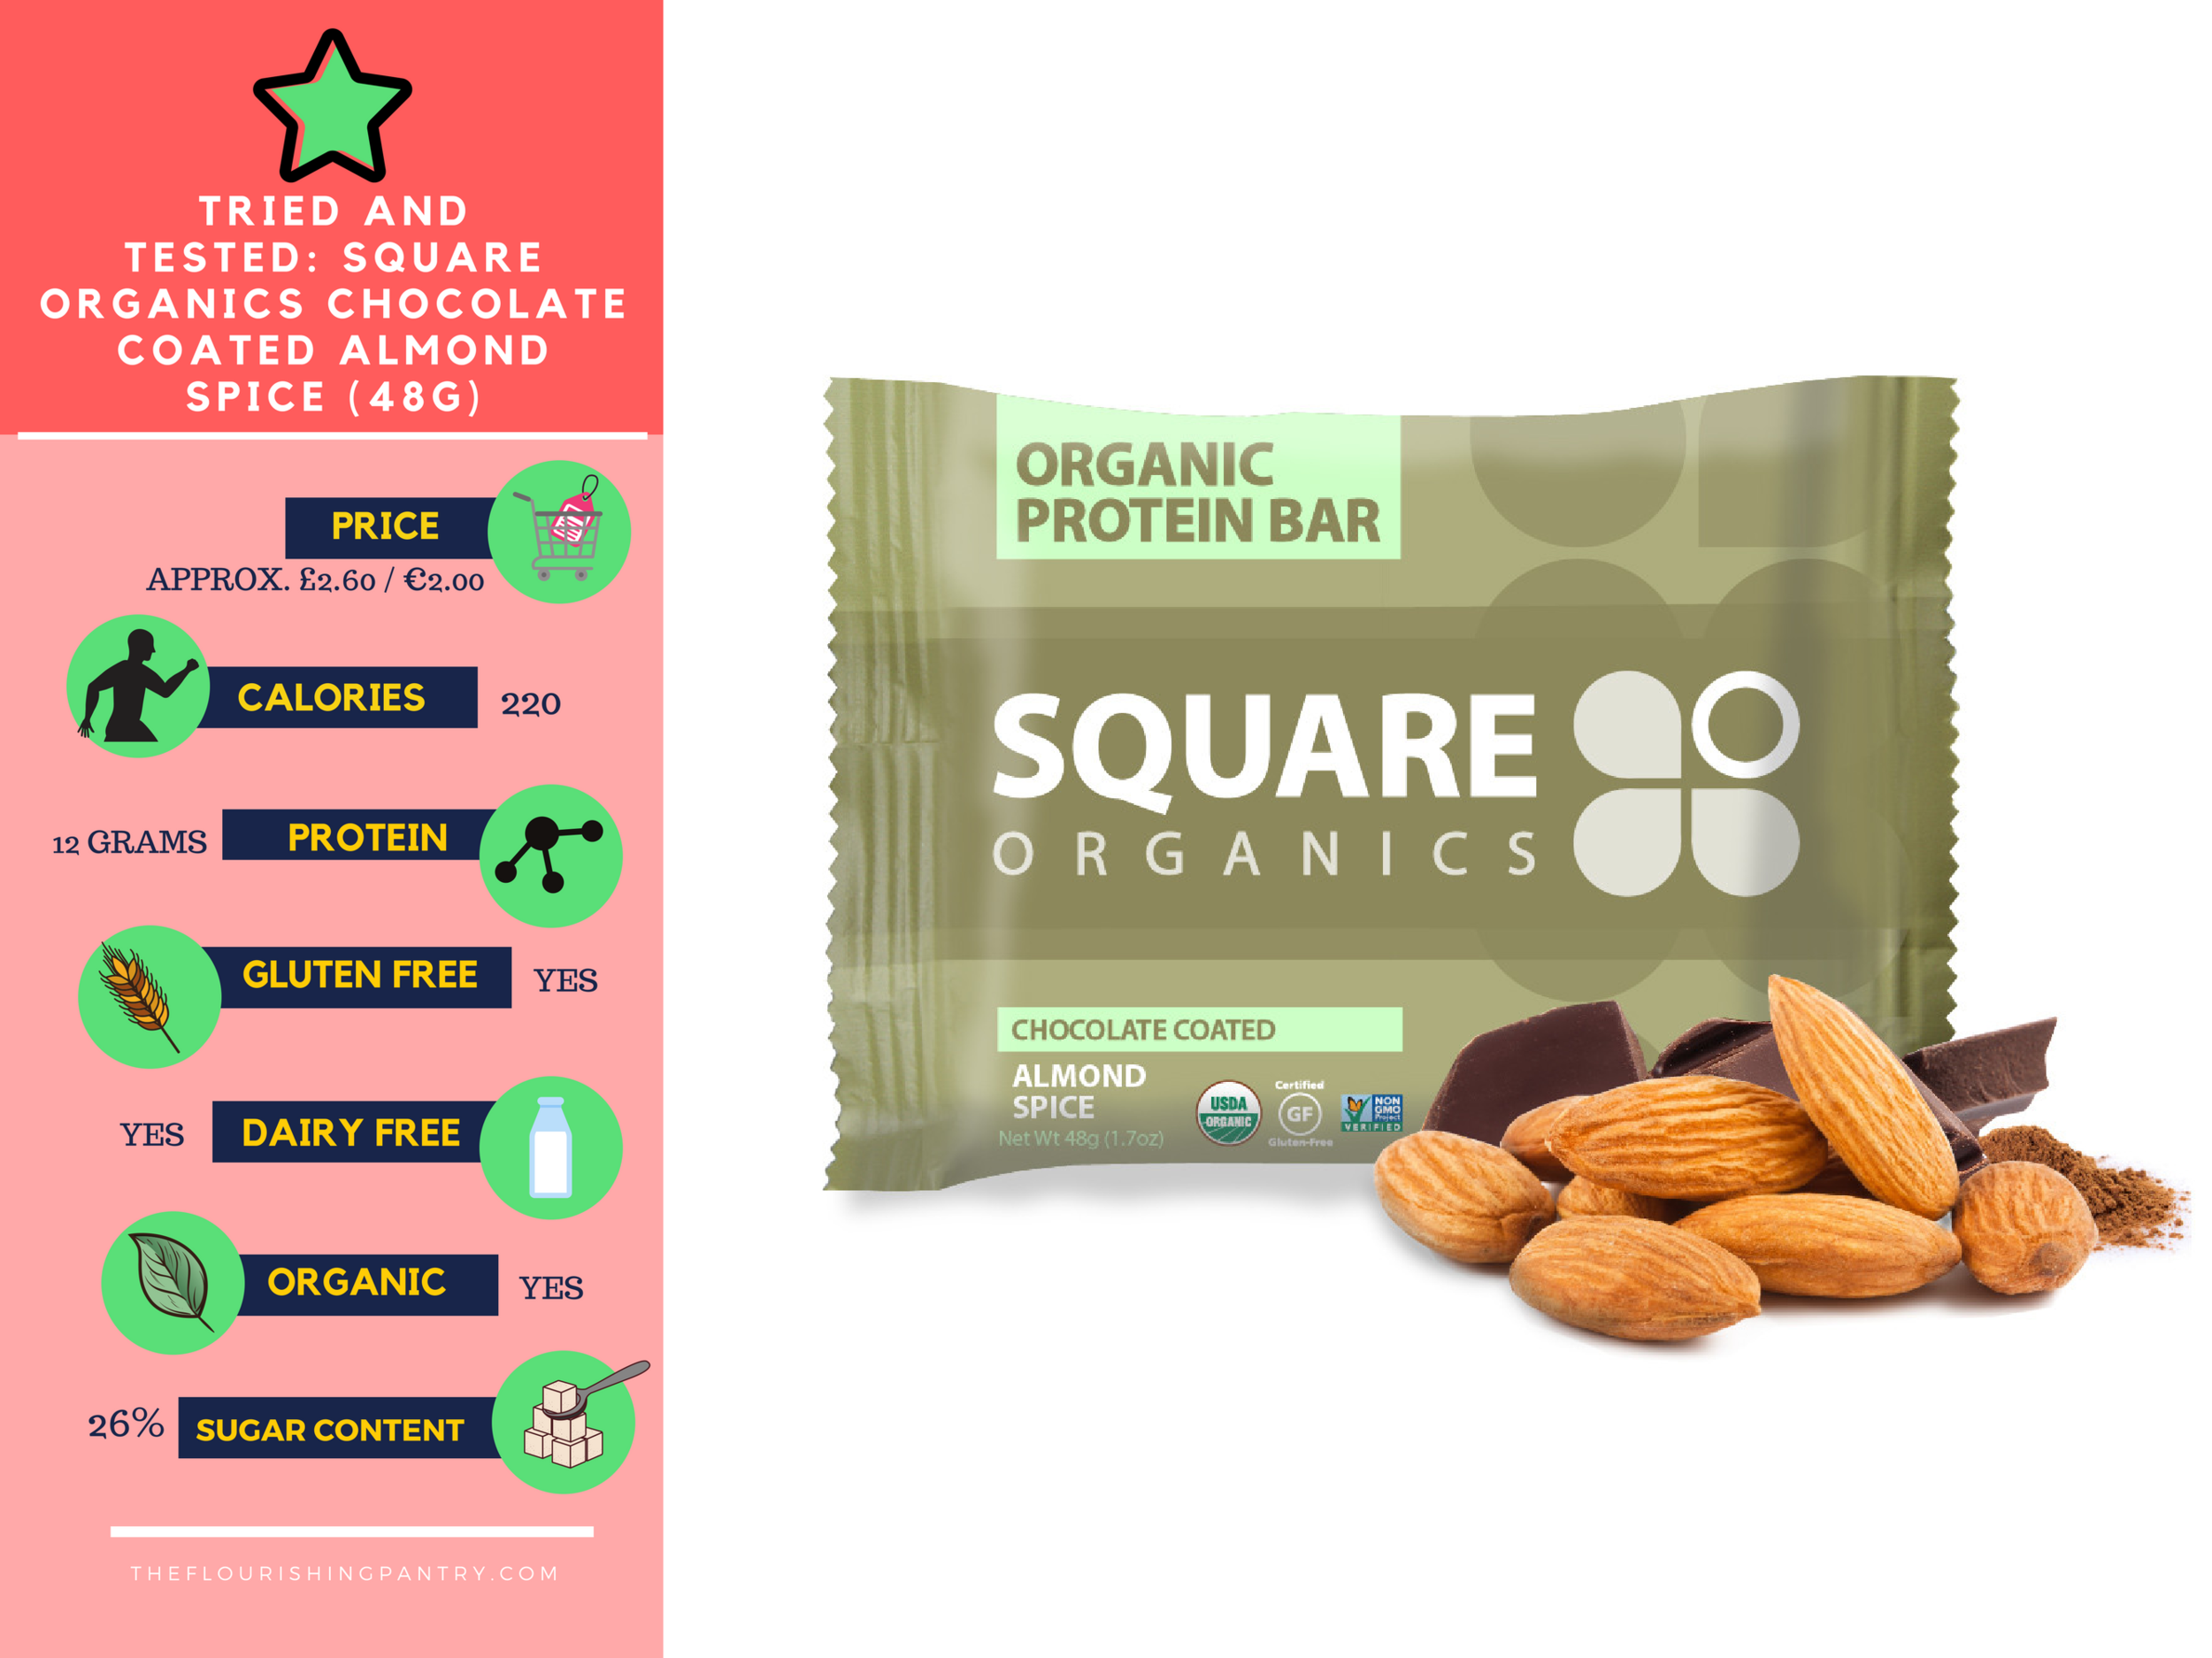 Square Organics review | The Flourishing Pantry